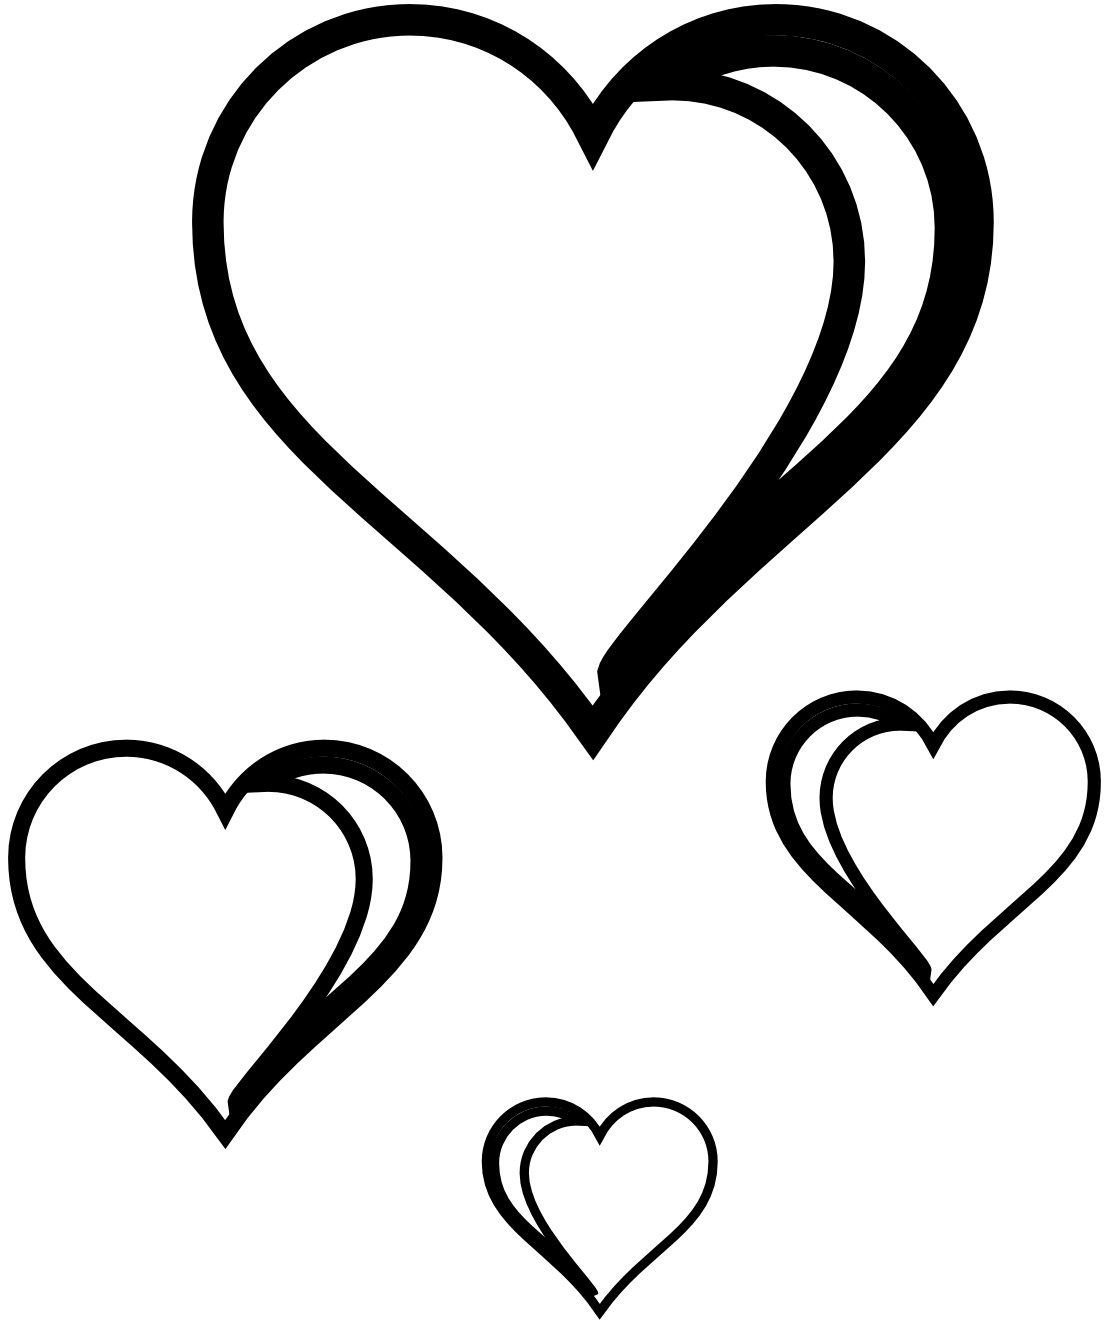 House love clipart black and white transparent background clip freeuse library Best Black And White Heart Clipart #20627 - Clipartion.com clip freeuse library